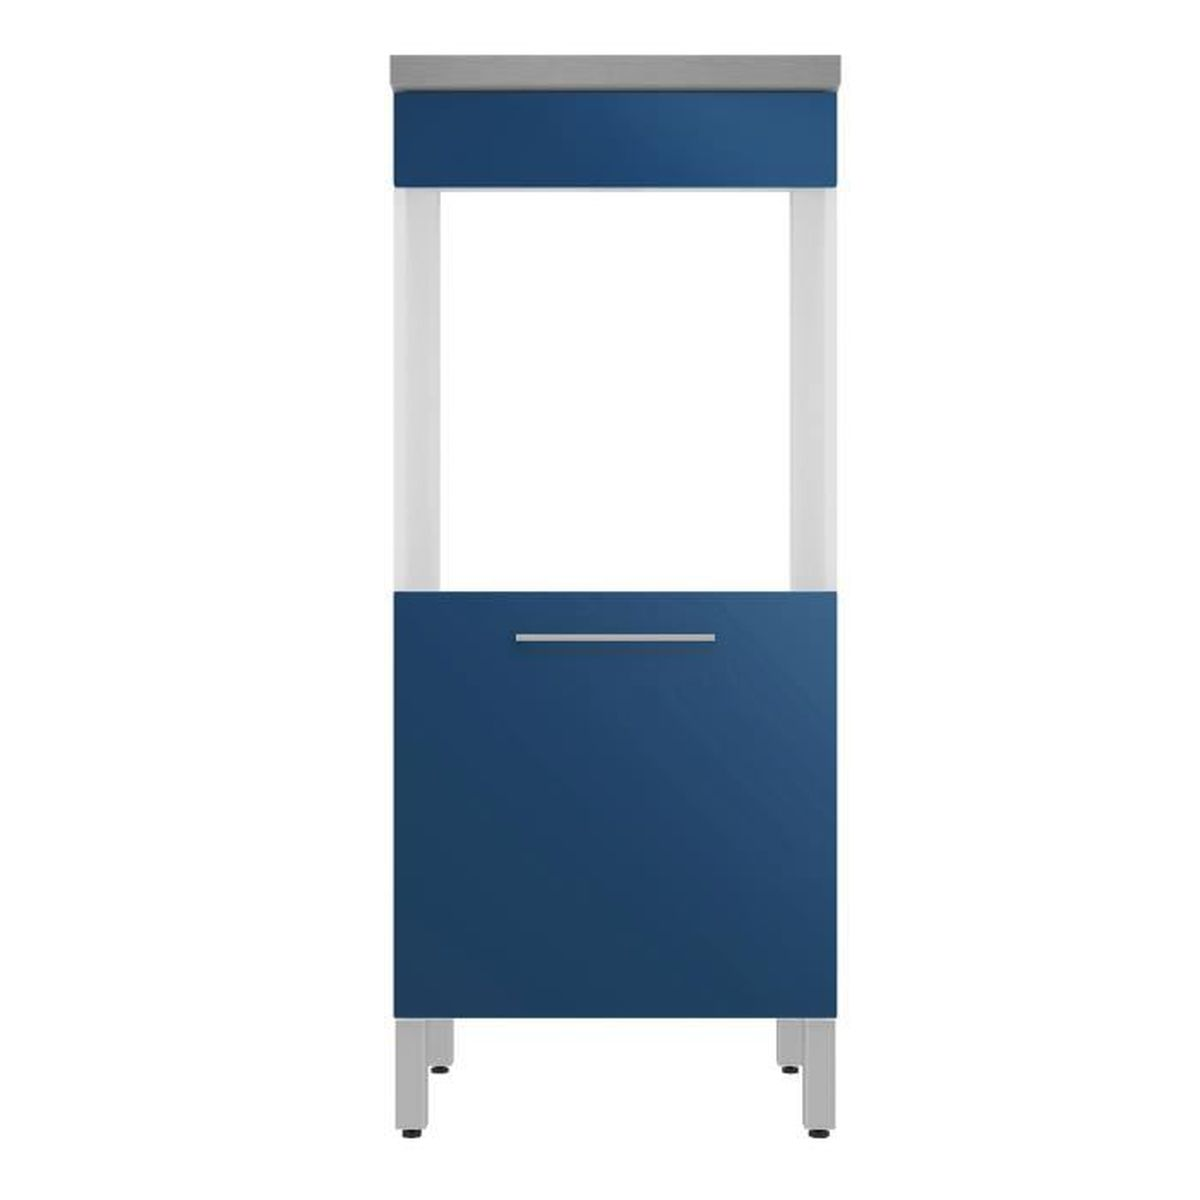 elia meuble de cuisine armoire pour four bleu 60cm bleu. Black Bedroom Furniture Sets. Home Design Ideas